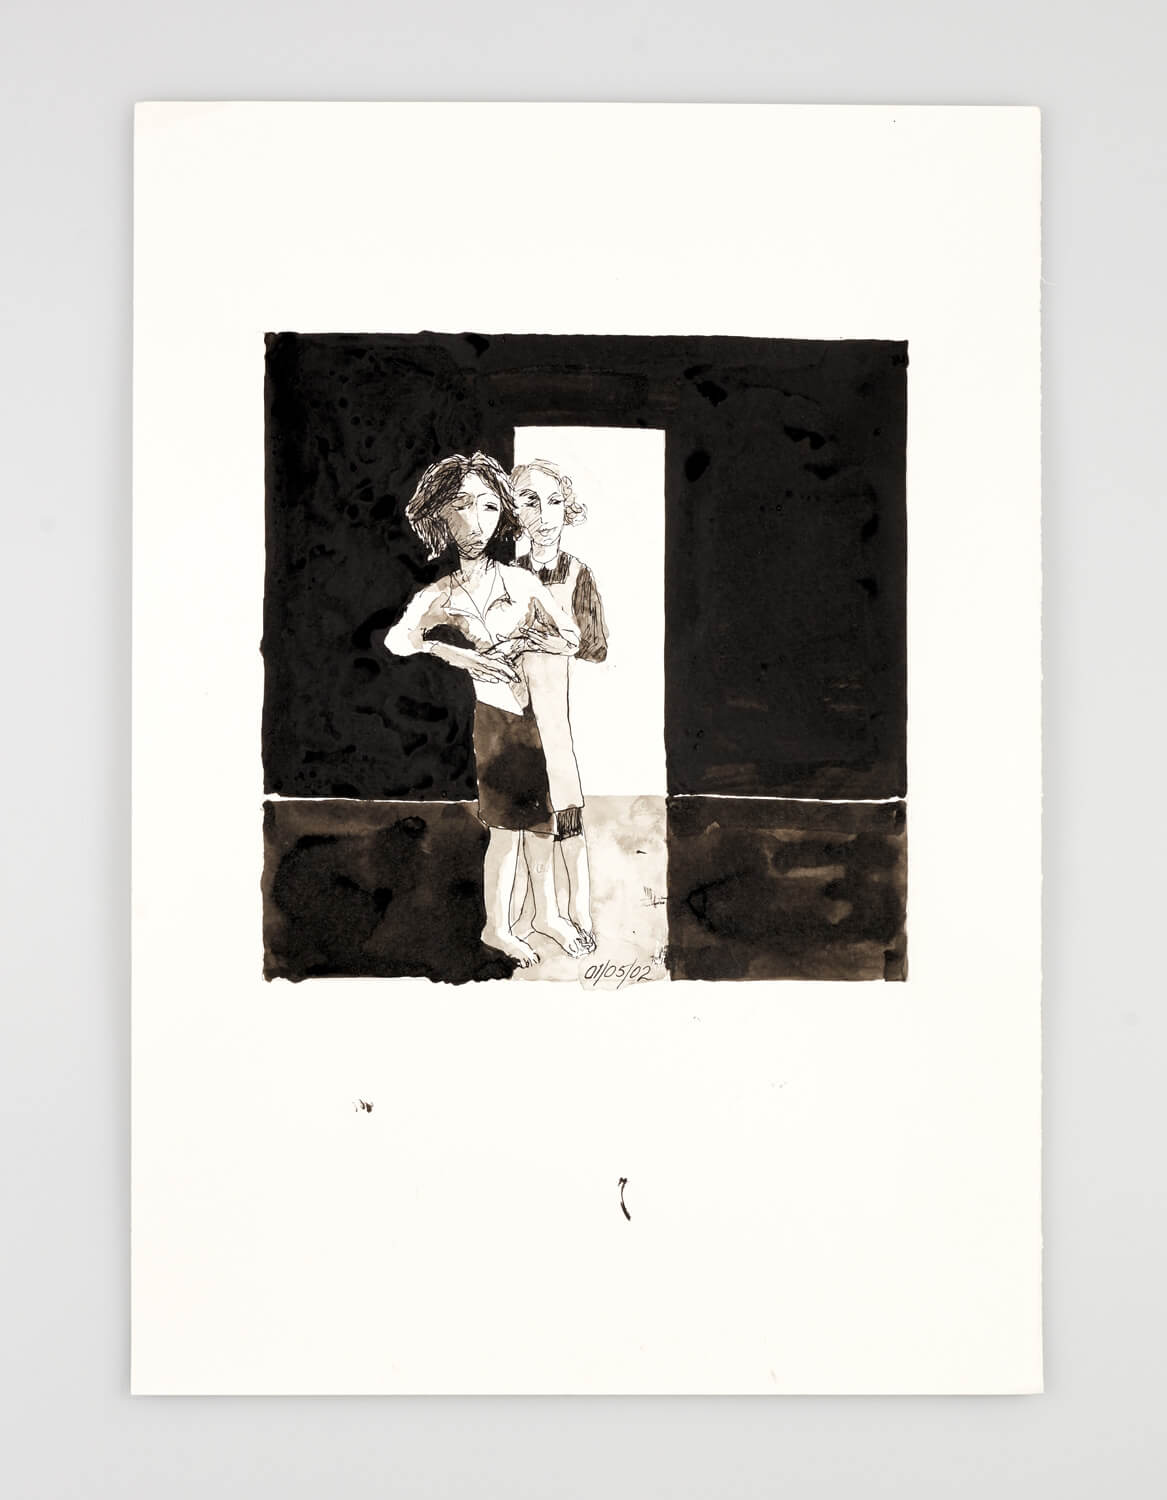 JB065 - Two Women - Being dressed - 2002 - 50 x 35 cm - Indian ink and wash on paper